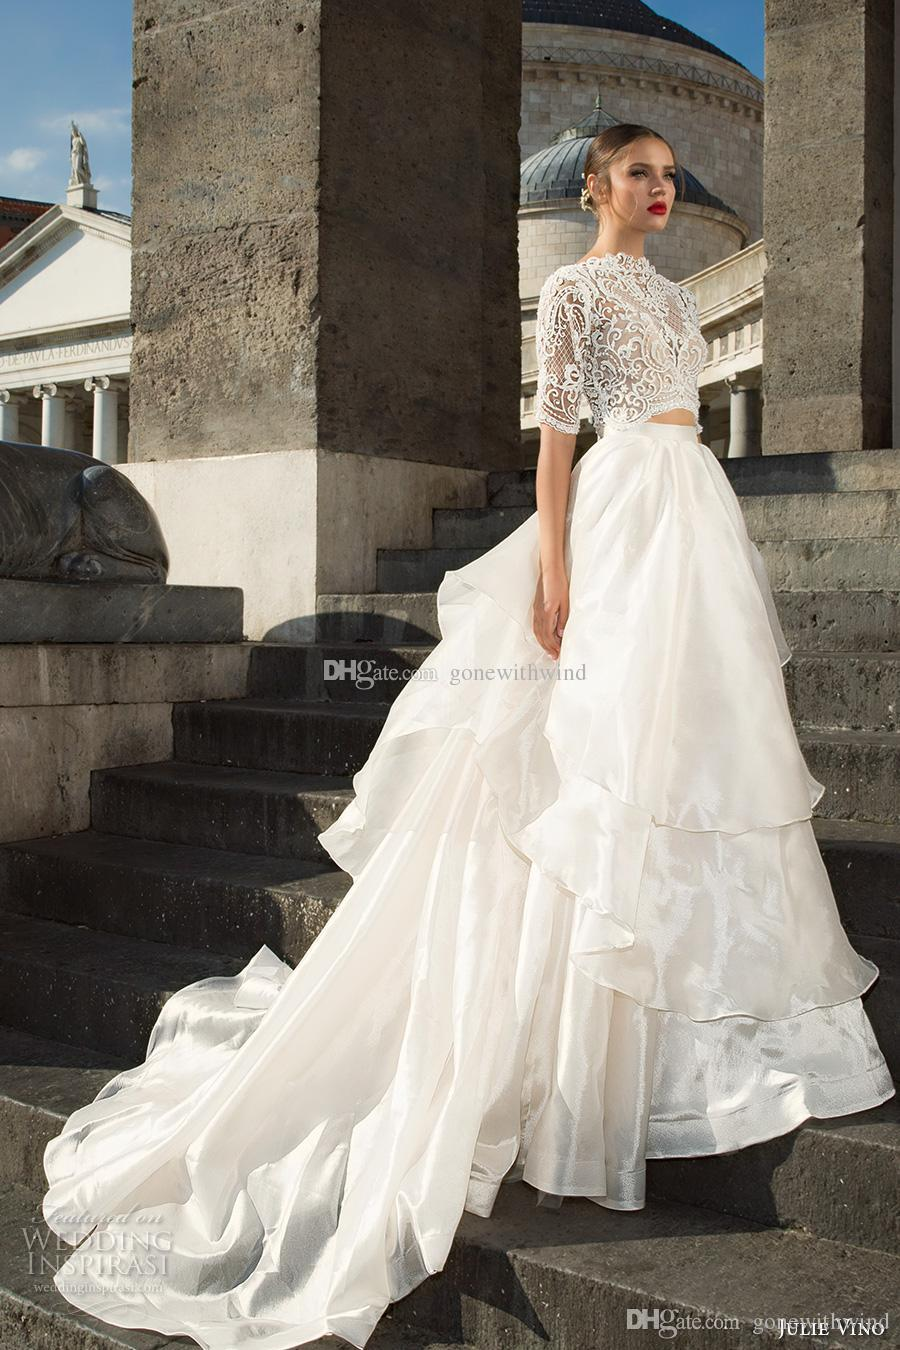 Royal Train Ball Gown Wedding Dresses 2017 Julie Vino Half Sleeves High Neck Lace Crop Top Princess Tiered Skirt V Back Sweetheart